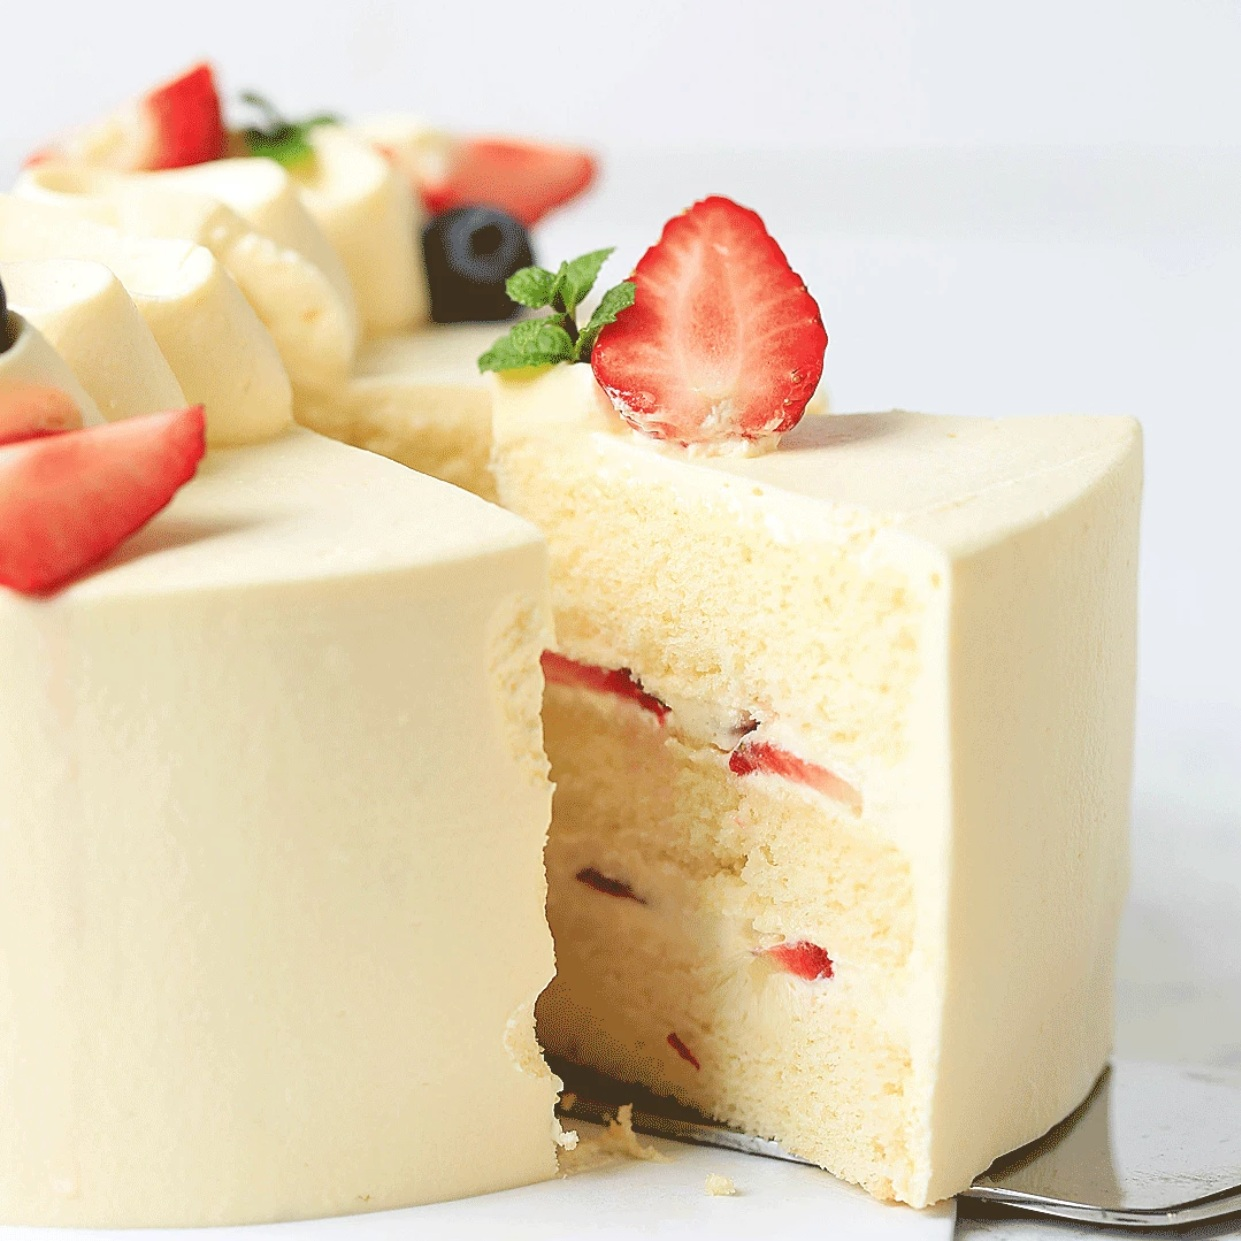 3 Layers with Cream and Strawberries in between